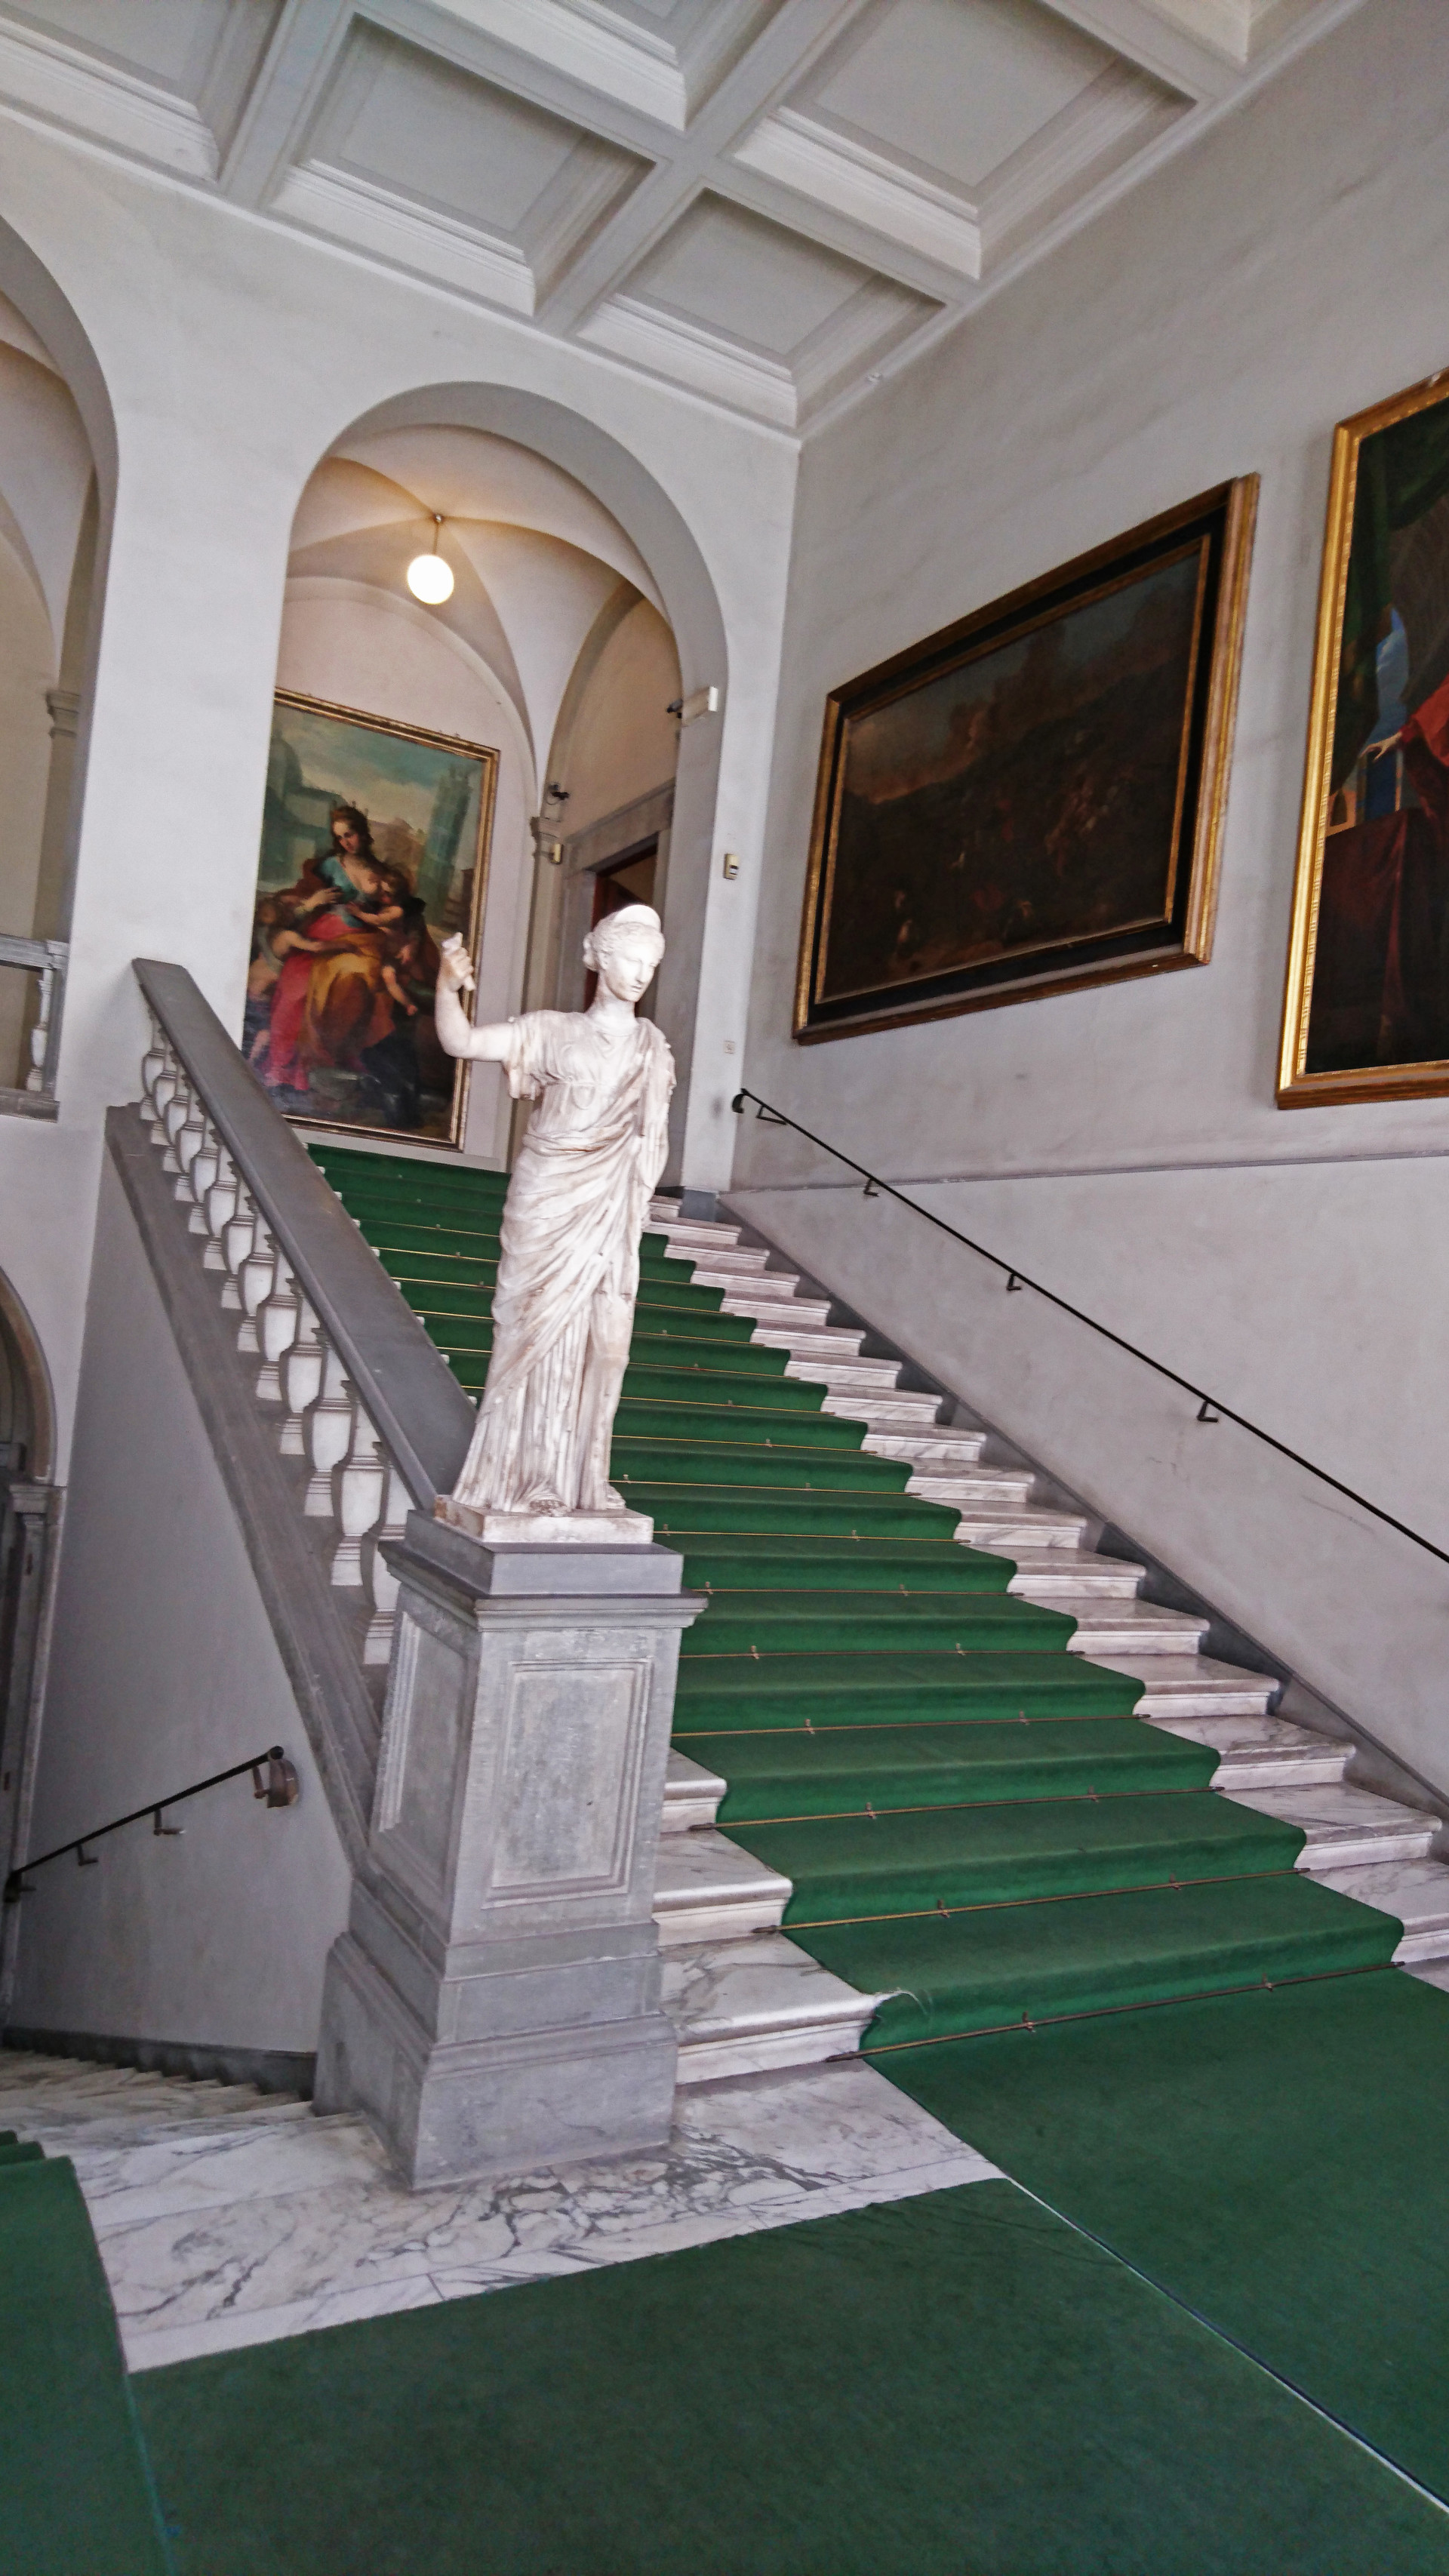 museo-di-palazzo-reale-c0d4ee81086c32be6